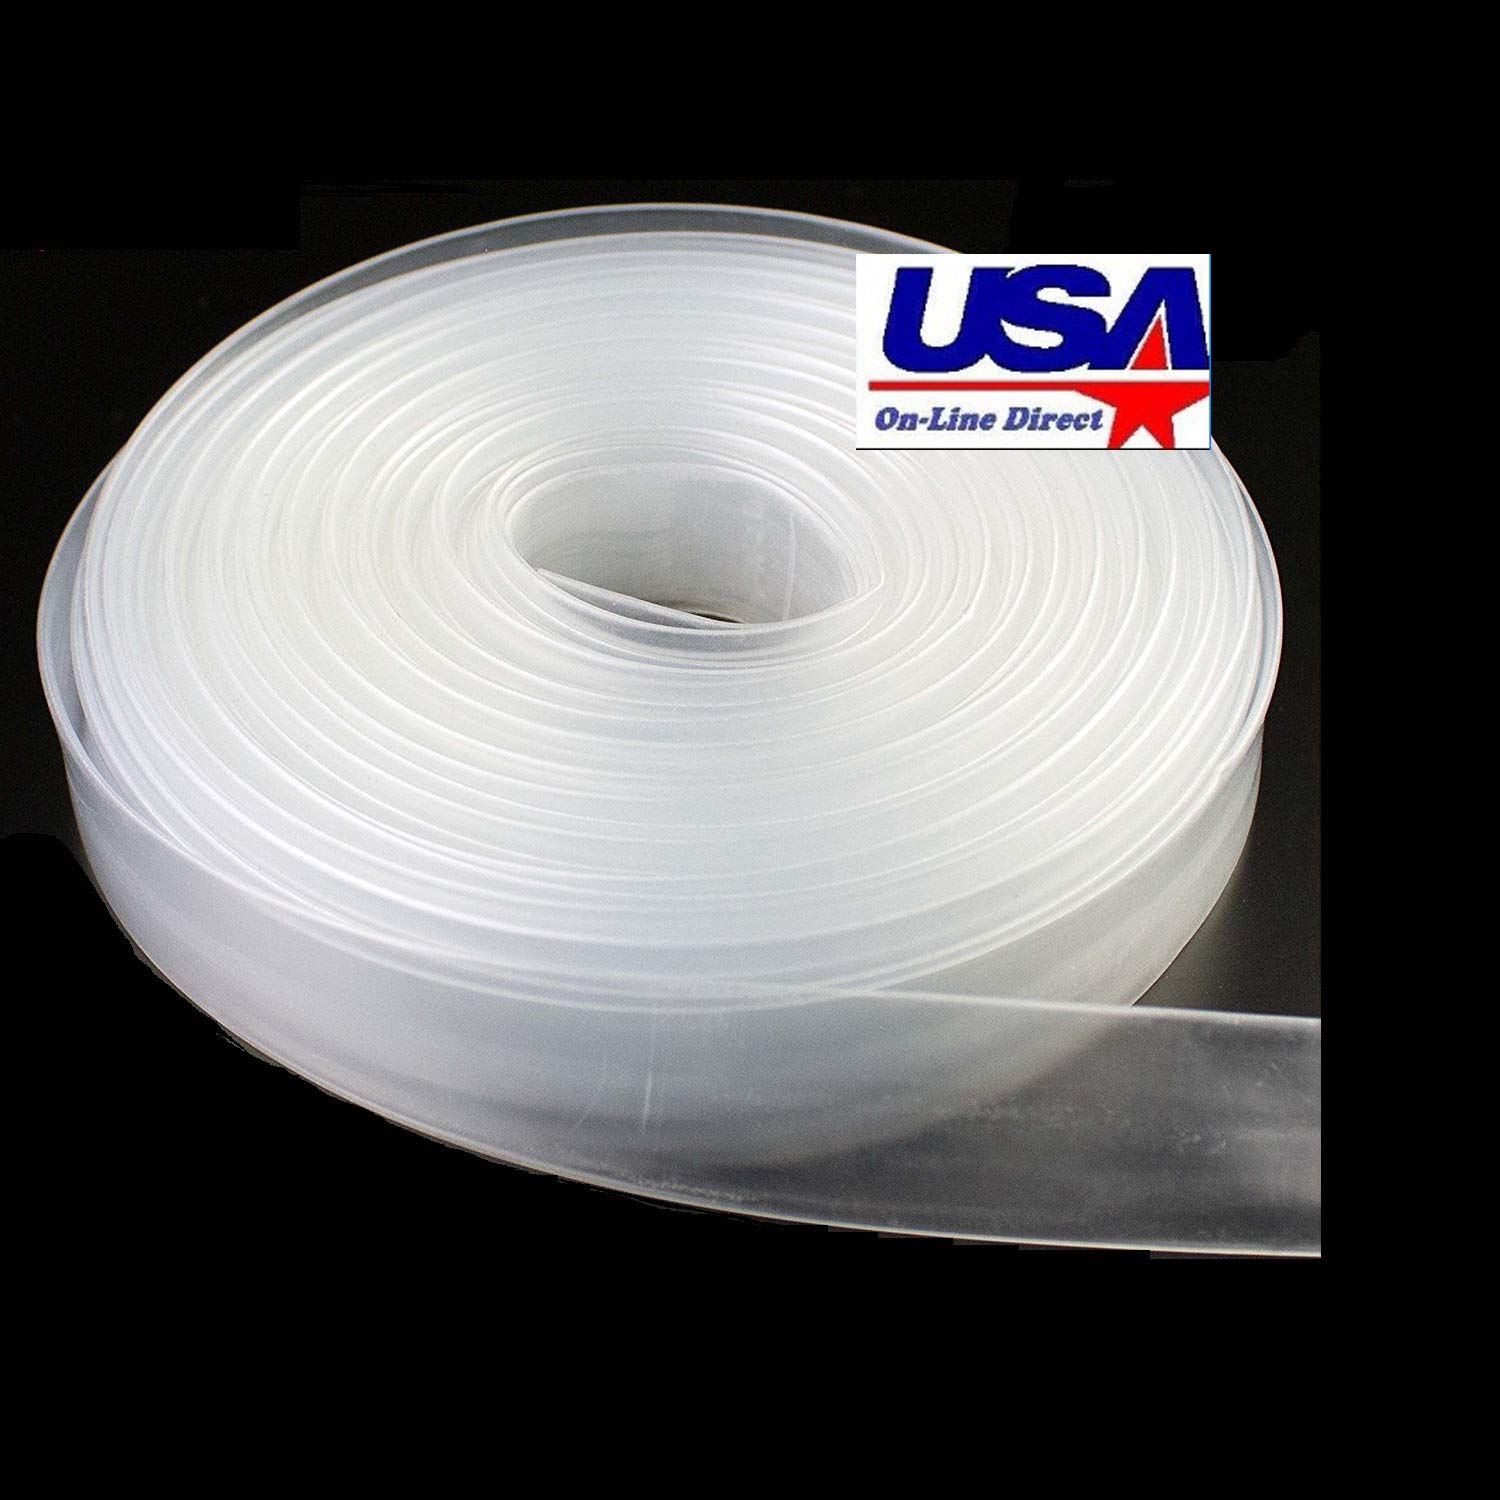 uxcell Heat Shrink Tubing 3//16-inch 2:1 Heat Shrink Tube Wire Wrap 16ft Clear 5mm